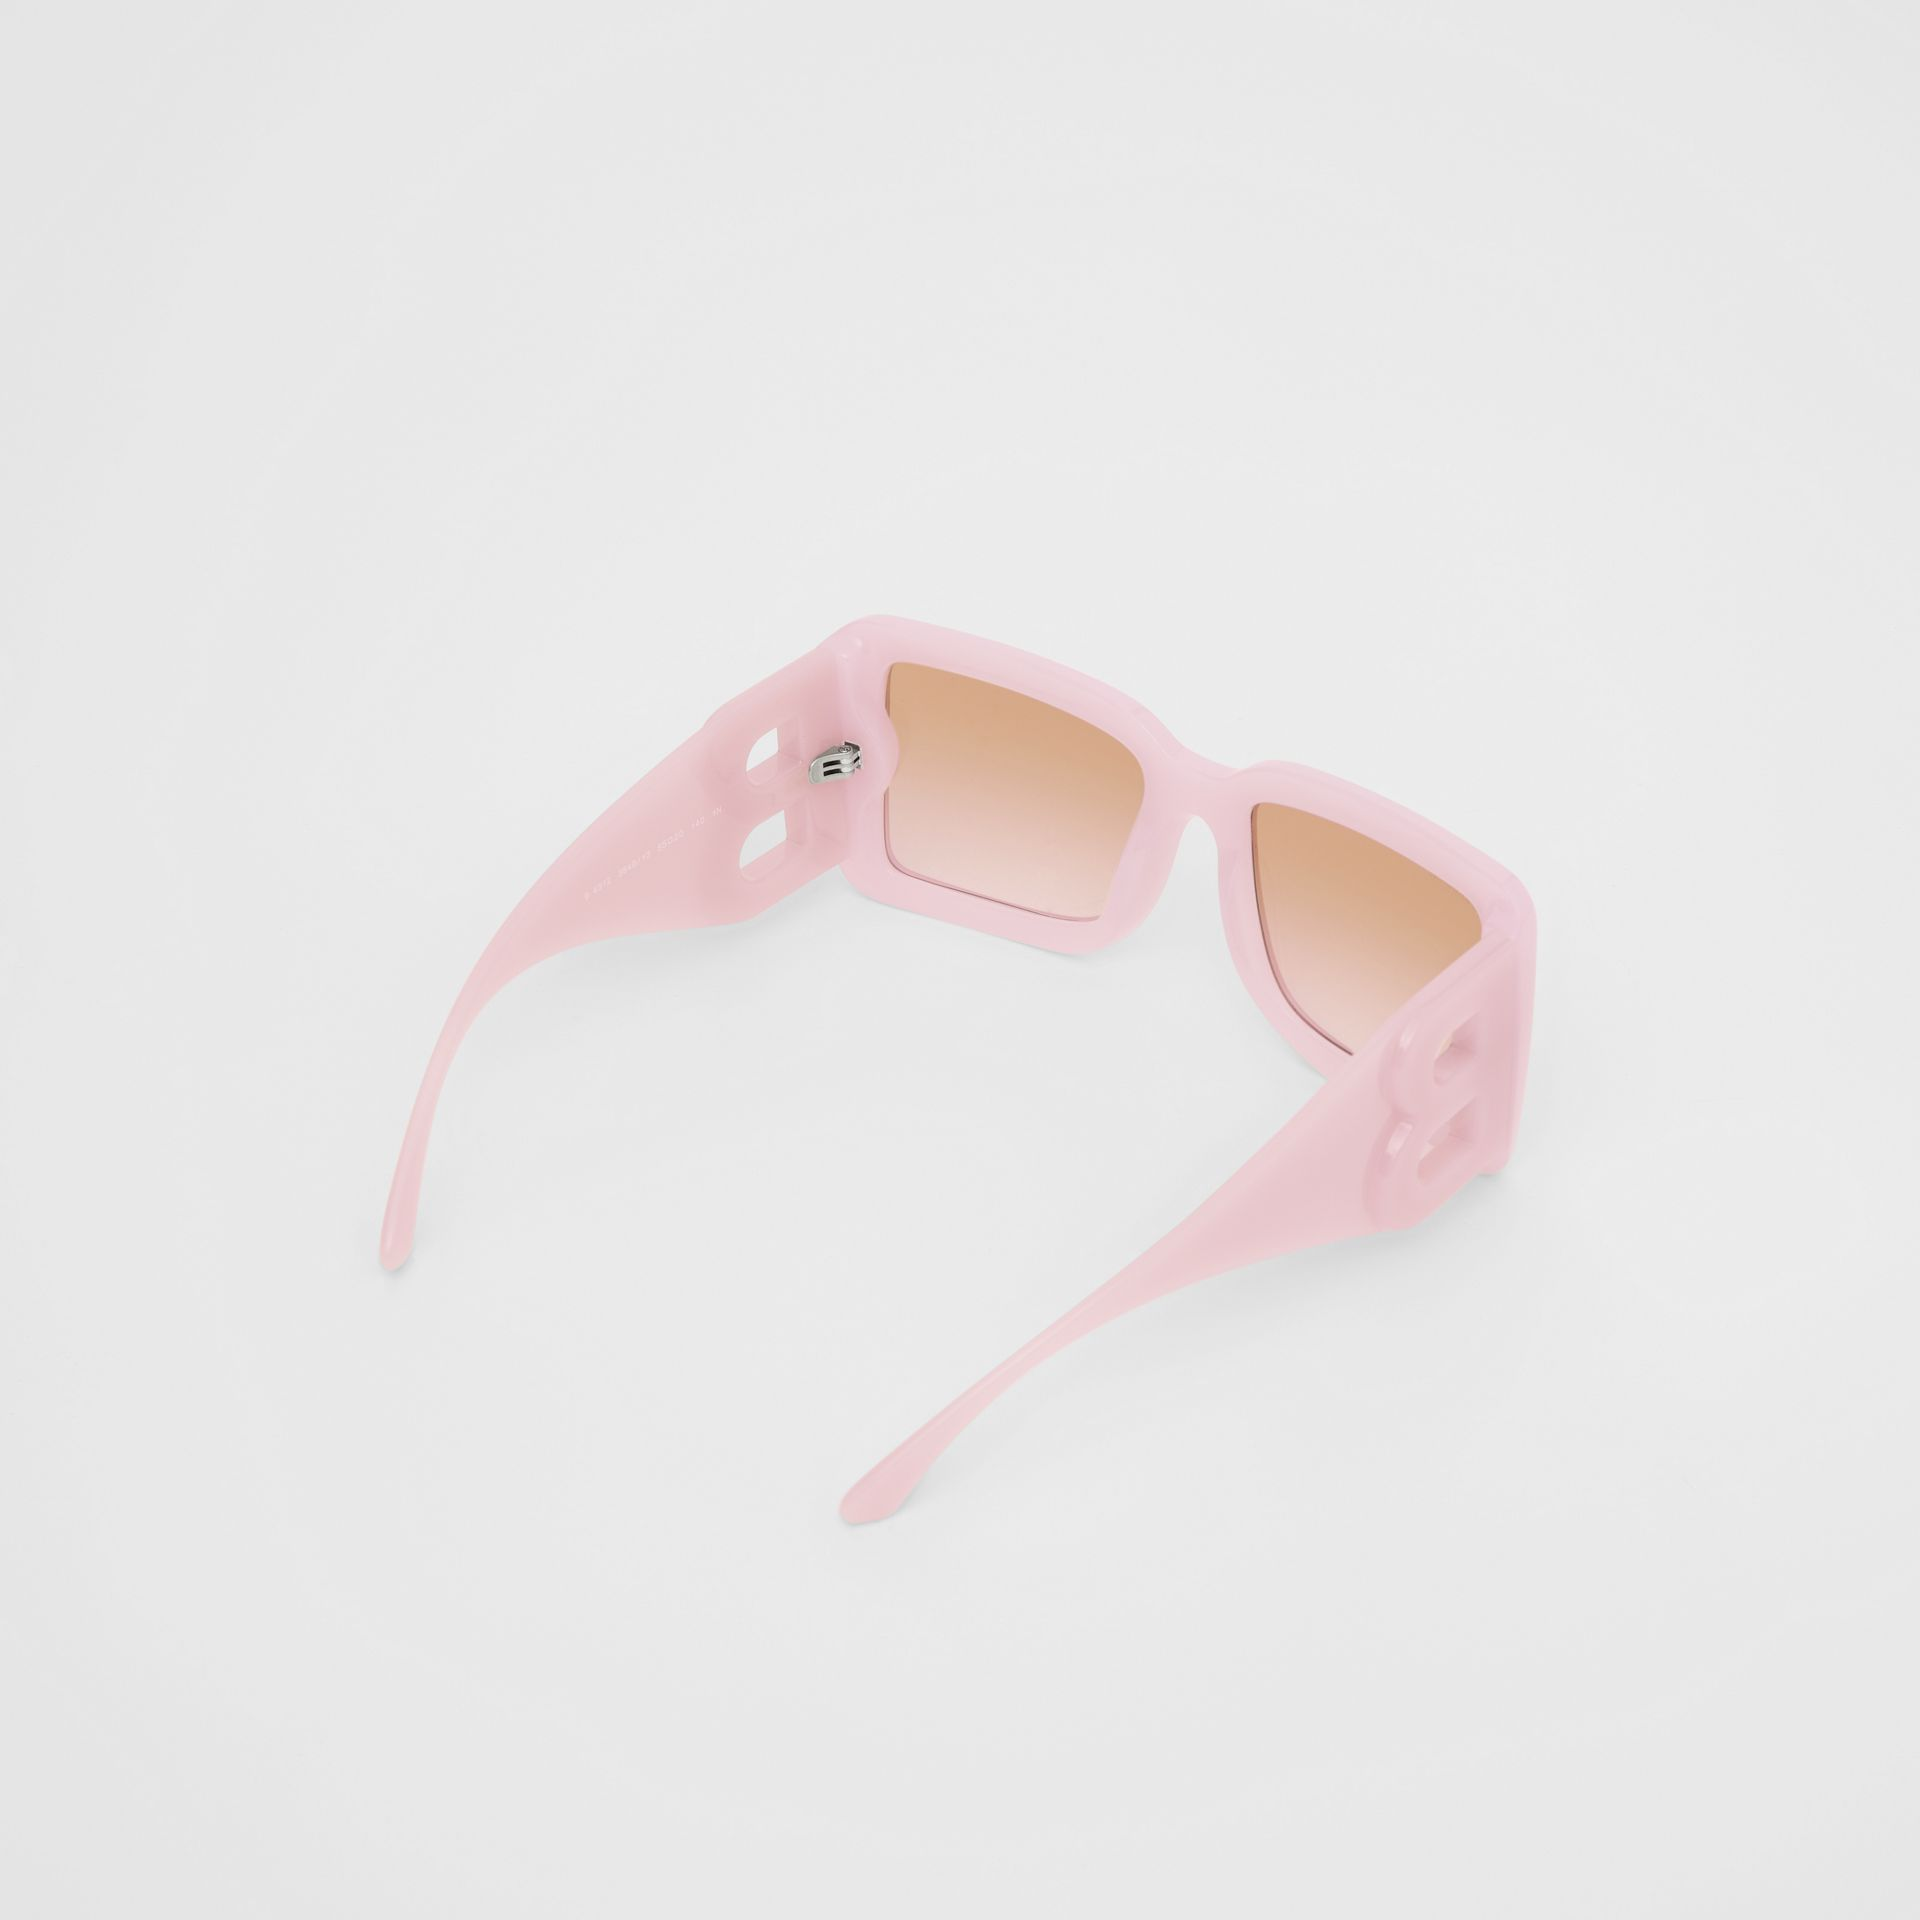 B Motif Square Frame Sunglasses in Lilac - Women   Burberry United Kingdom - gallery image 4